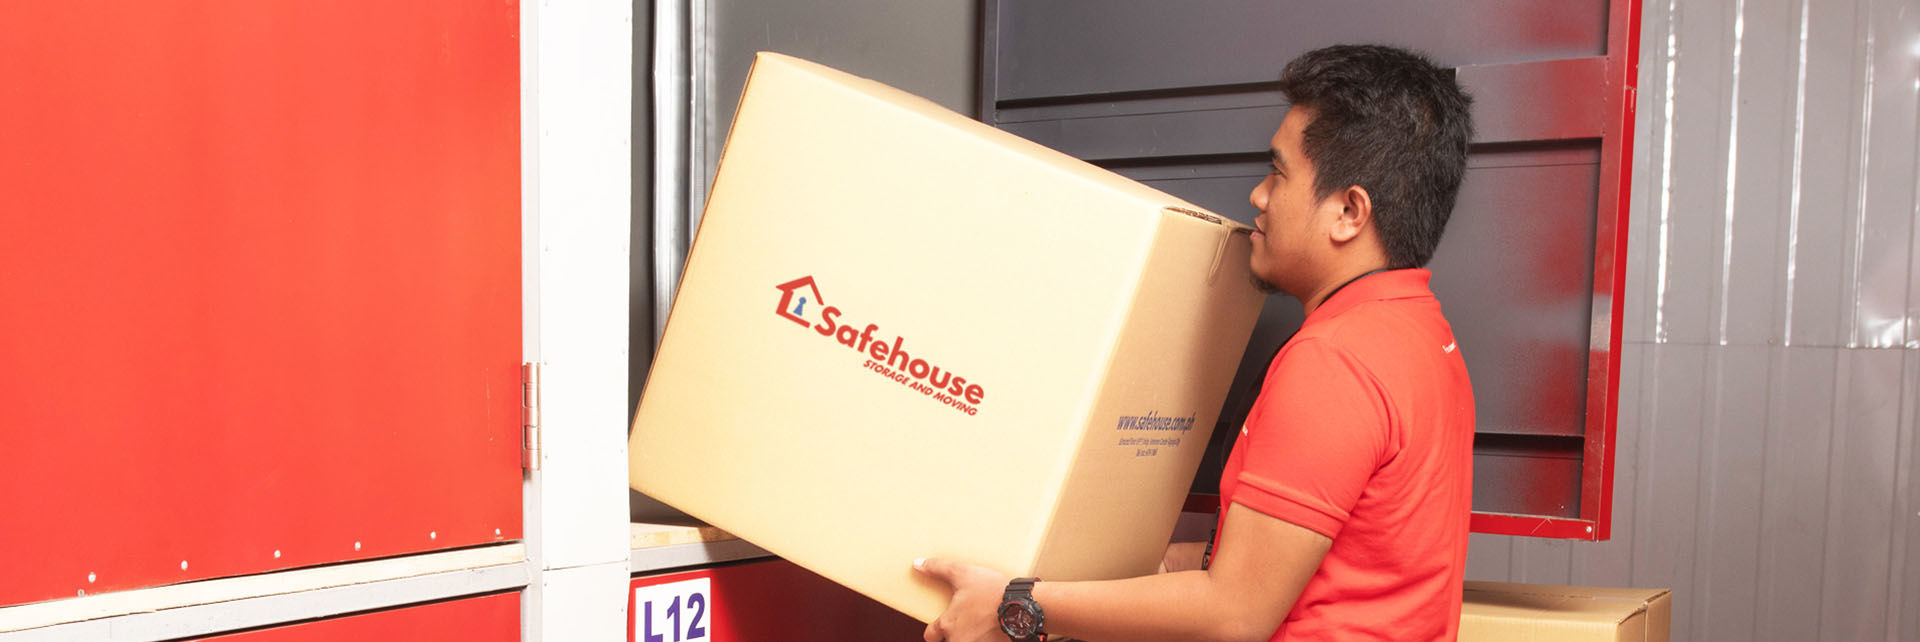 Self Storage & Warehouse for Rent in the Philippines   Safehouse Storage